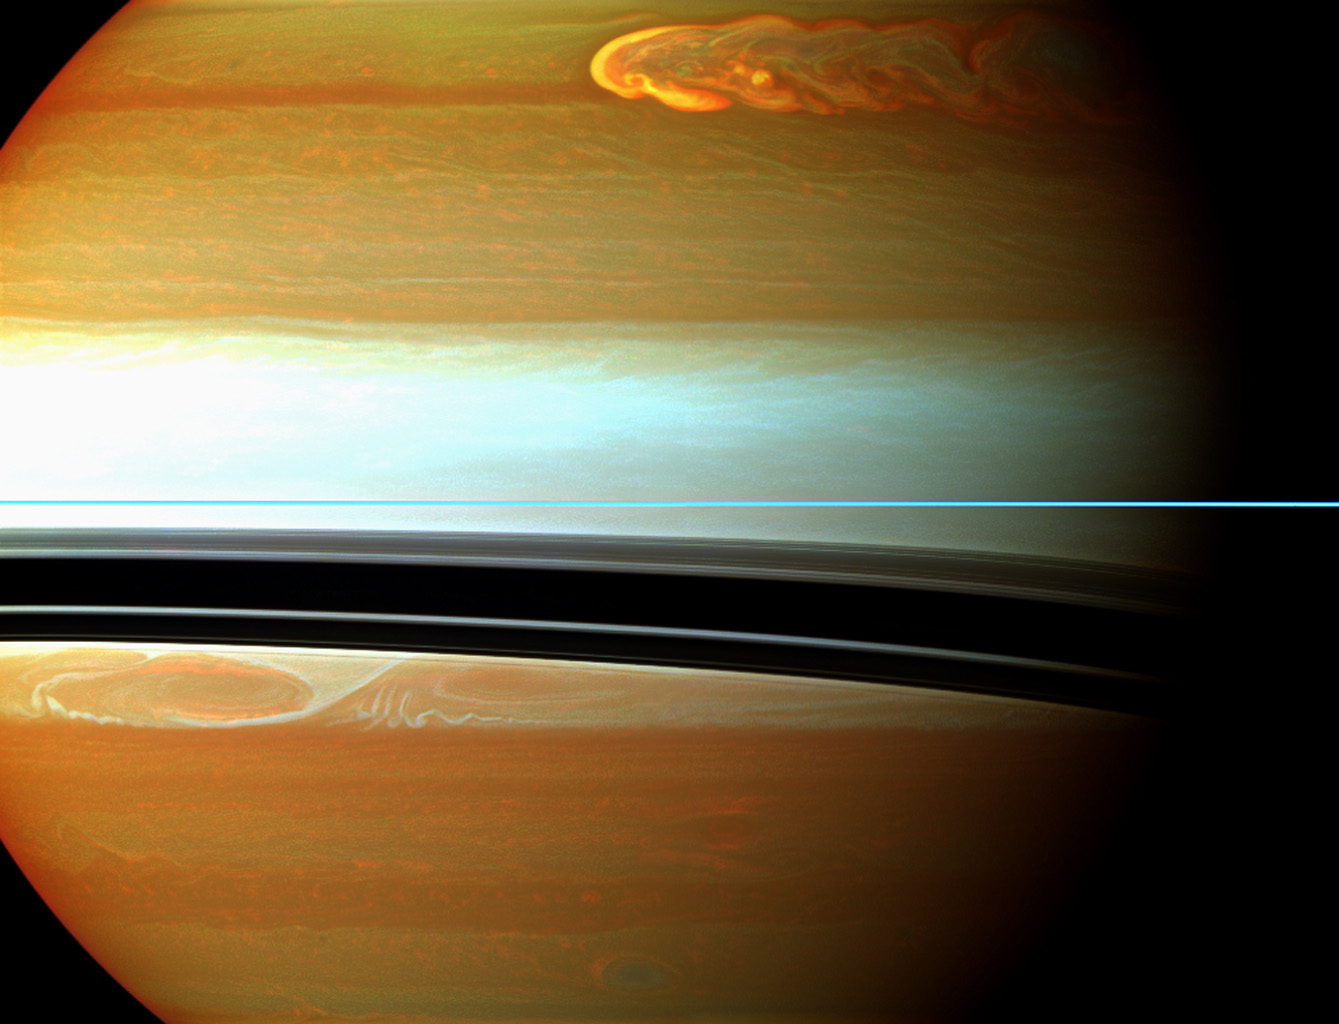 Saturn's northern storm marches through the planet's atmosphere in the top right of this false-color mosaic from NASA's Cassini spacecraft.